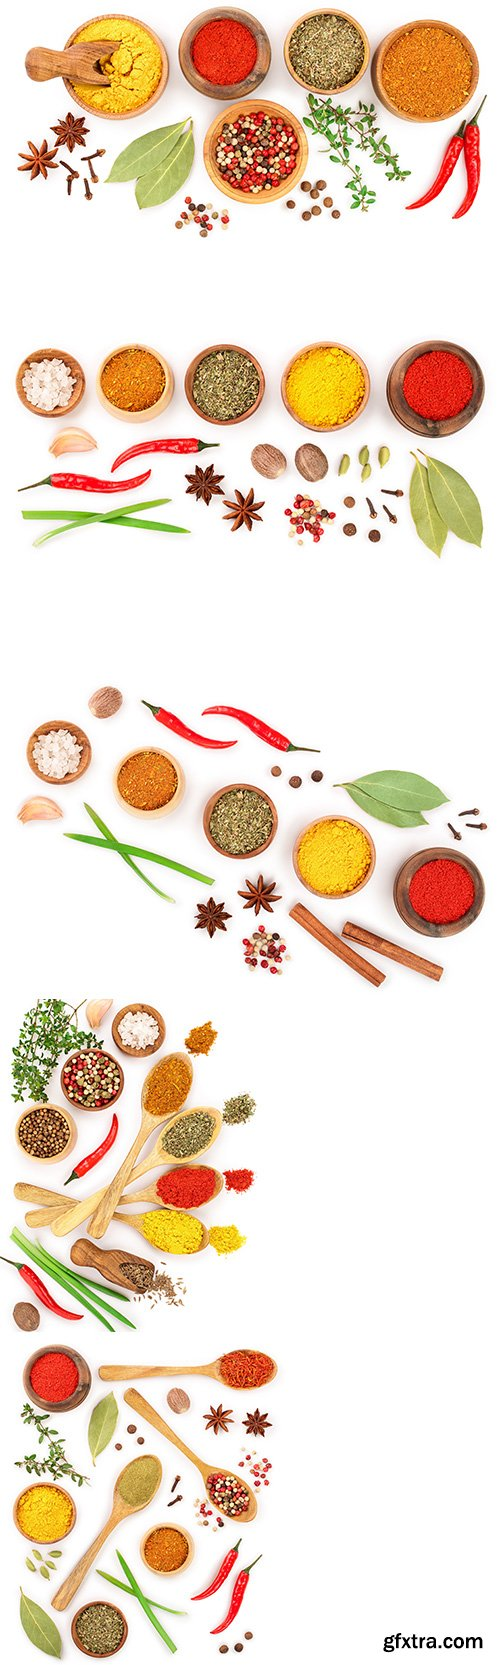 Mix Of Spices Isolated - 7xJPGs